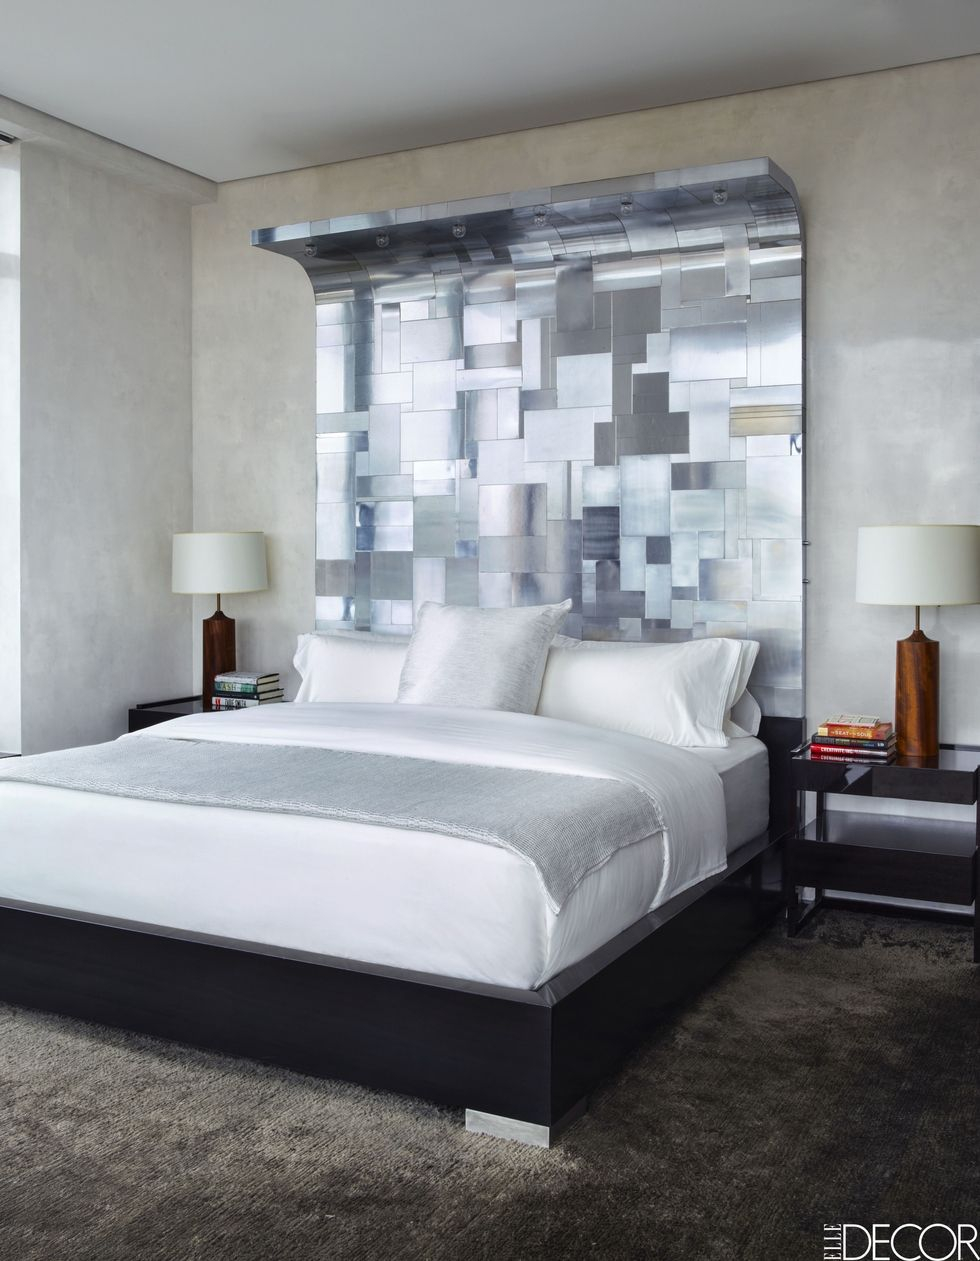 25 Inspiring Modern Bedroom Design Ideas inside 14 Clever Concepts of How to Improve Modern Elegant Bedrooms